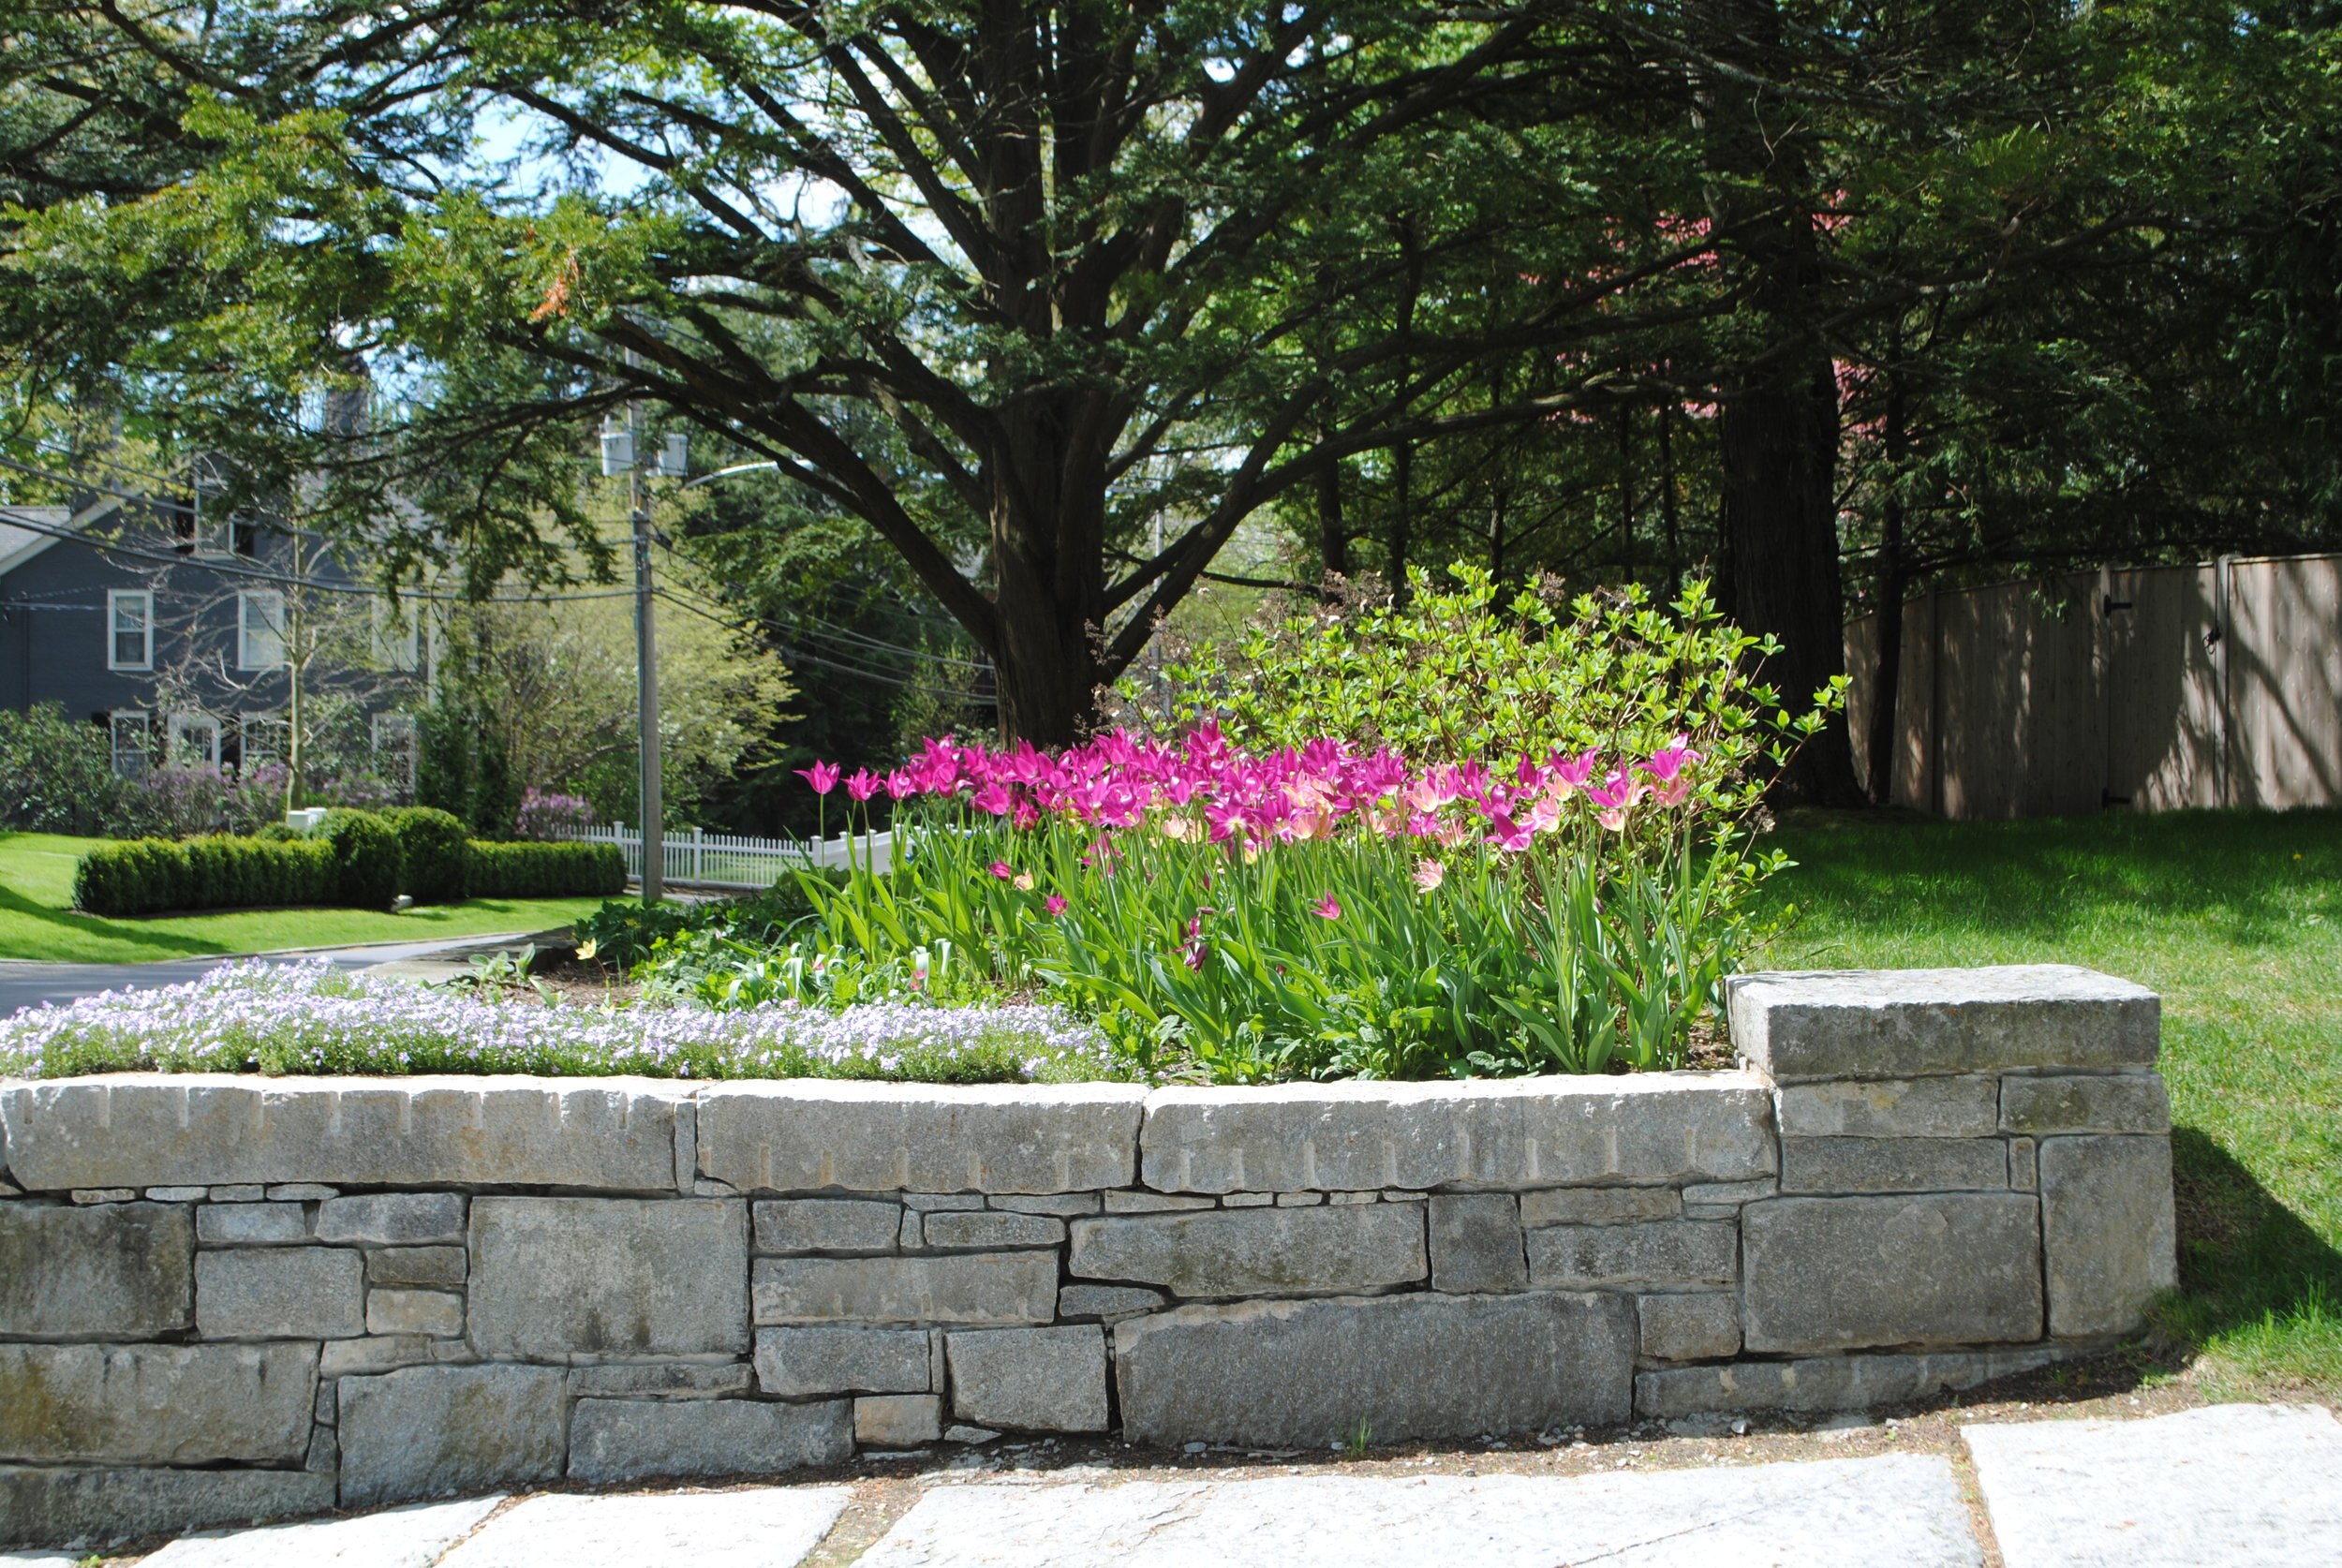 The granite is repurposed to repair the original old stone wall. The longer wall gives the bed more substance and impact.